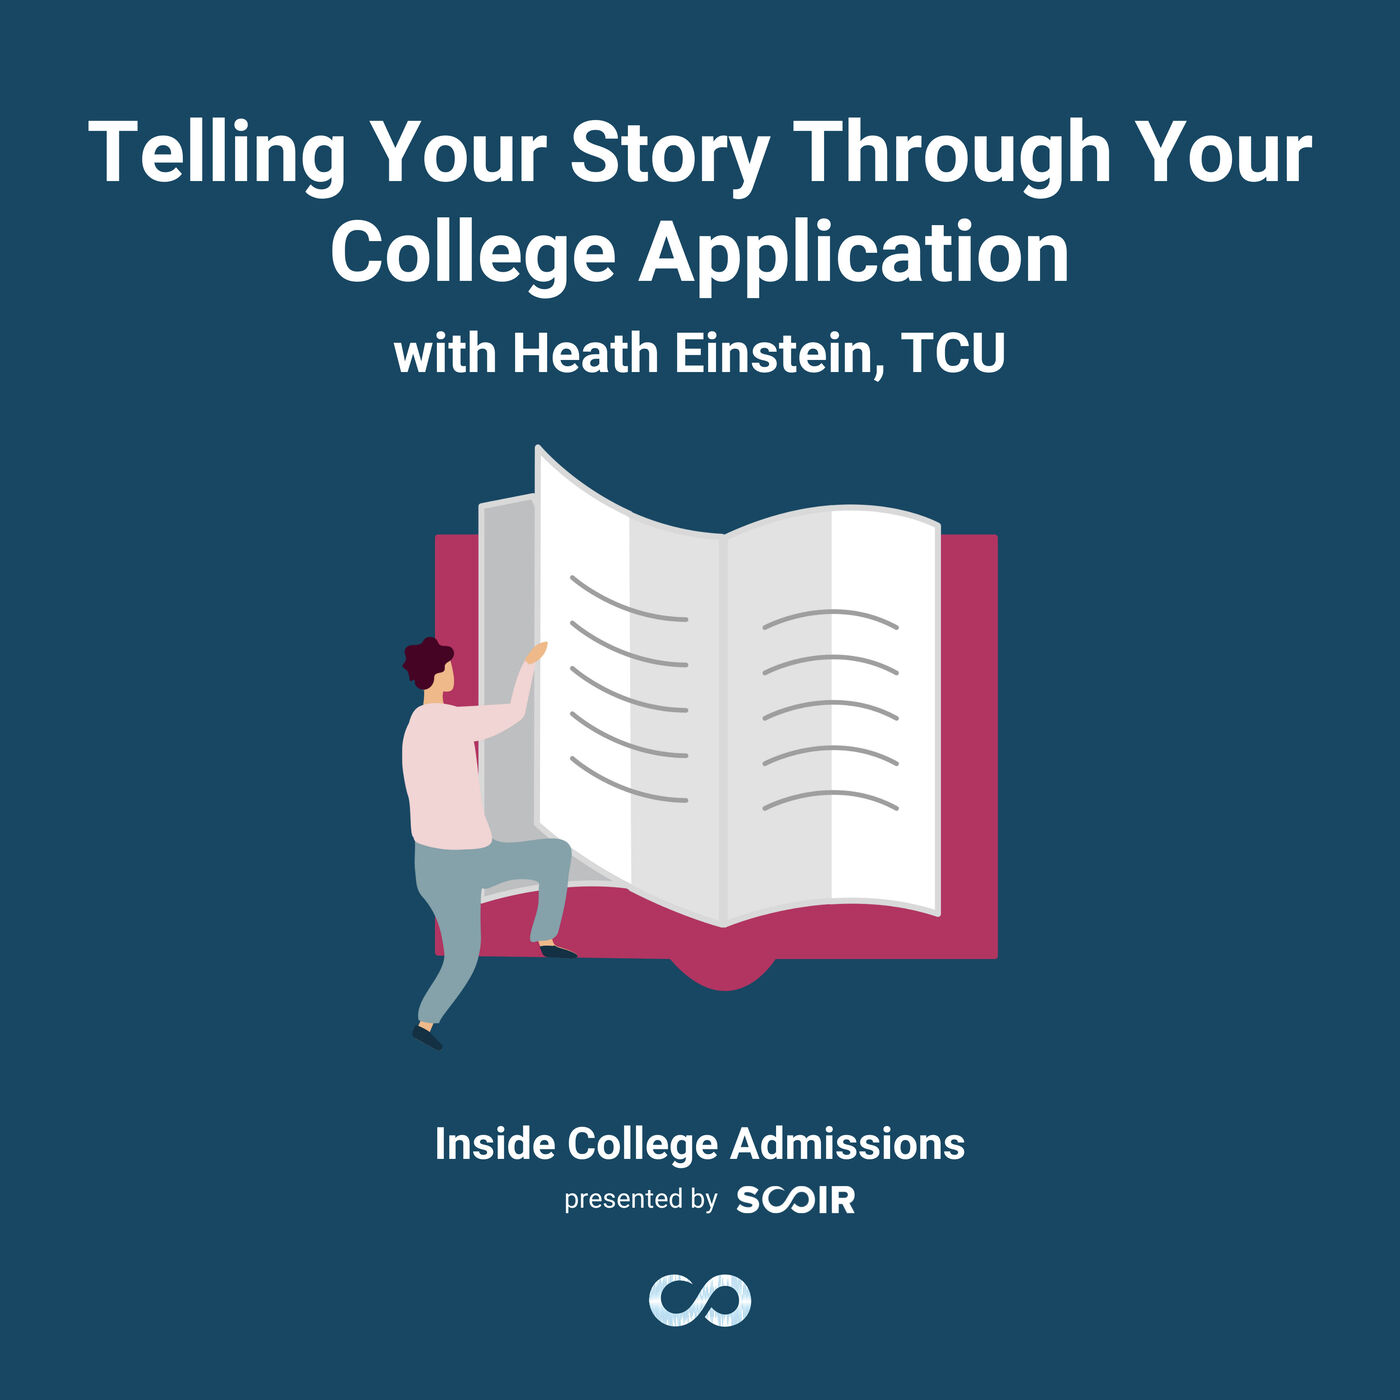 Telling Your Story Through Your College Application with Heath Einstein, TCU